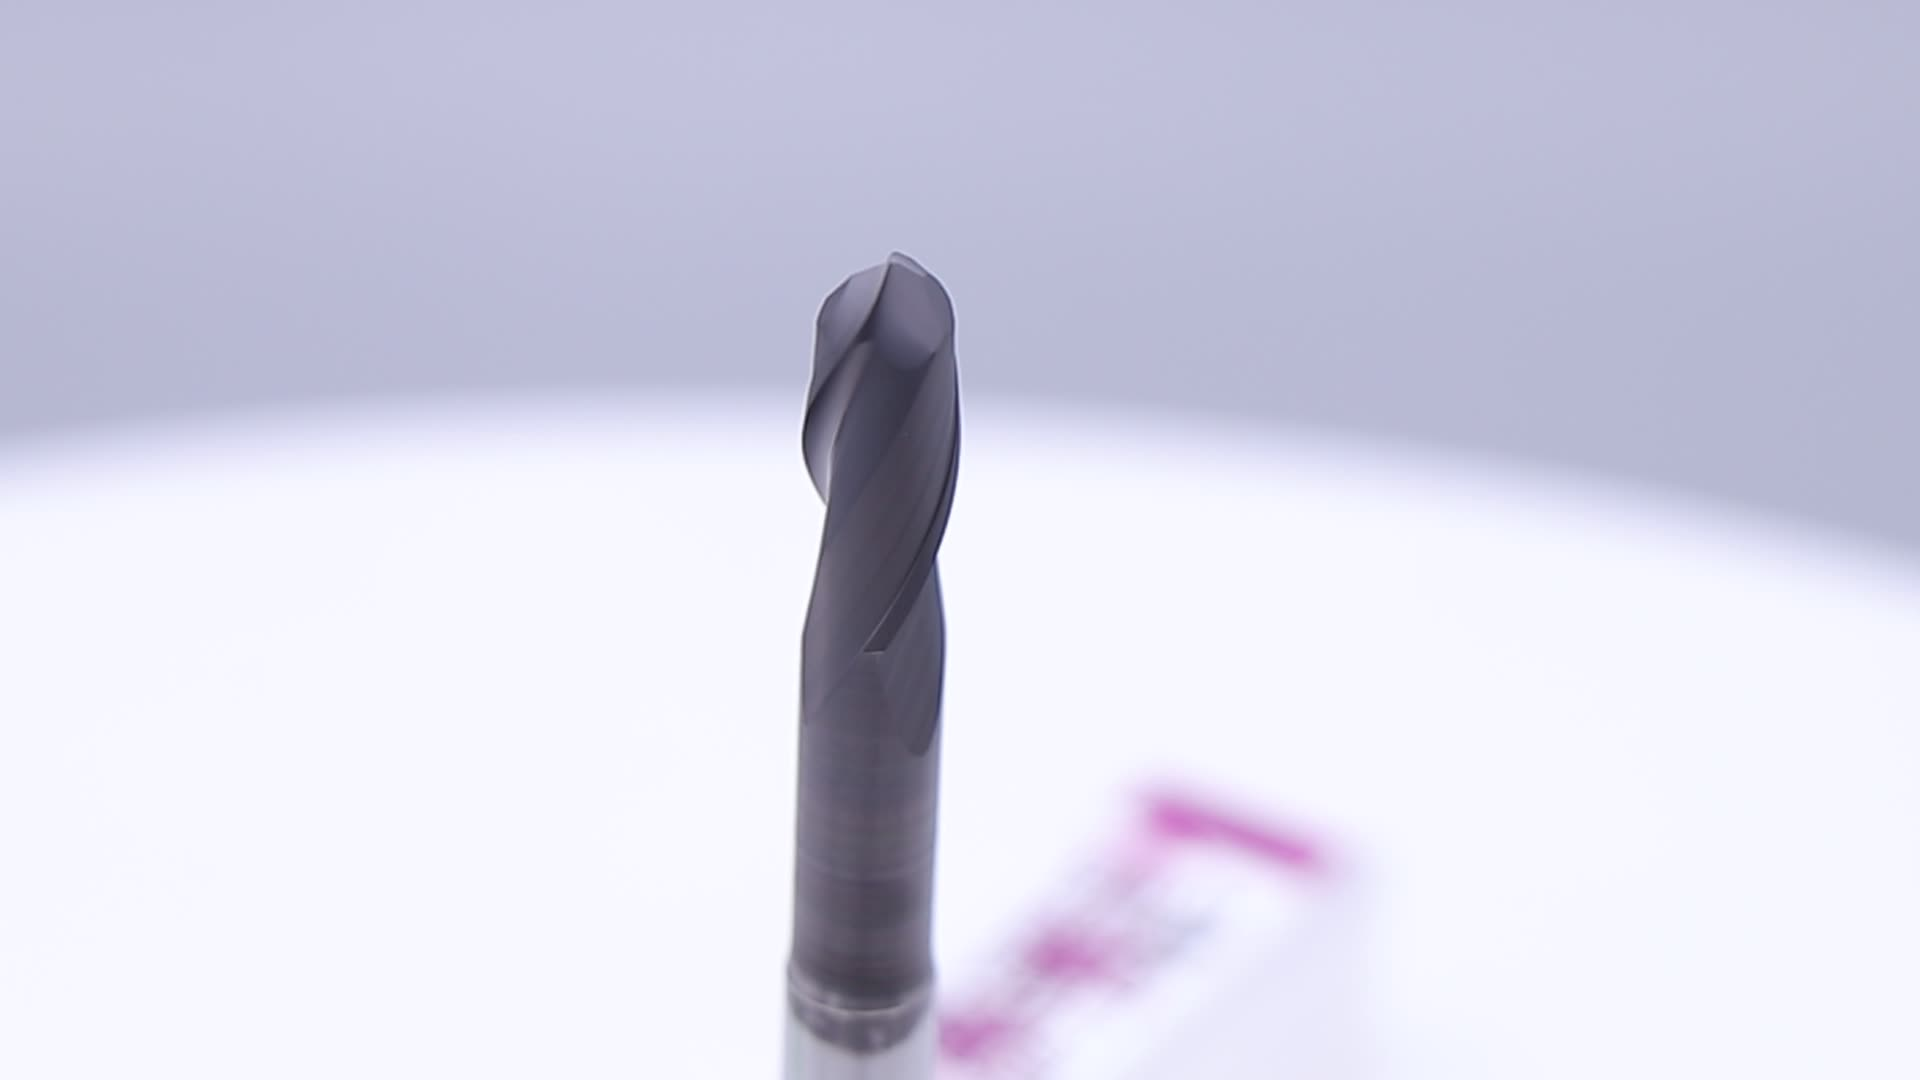 UNT 2 Flutes Tungsten Carbide corner rounding end mill in Milling Cutter Factory Outlets High Quality in China